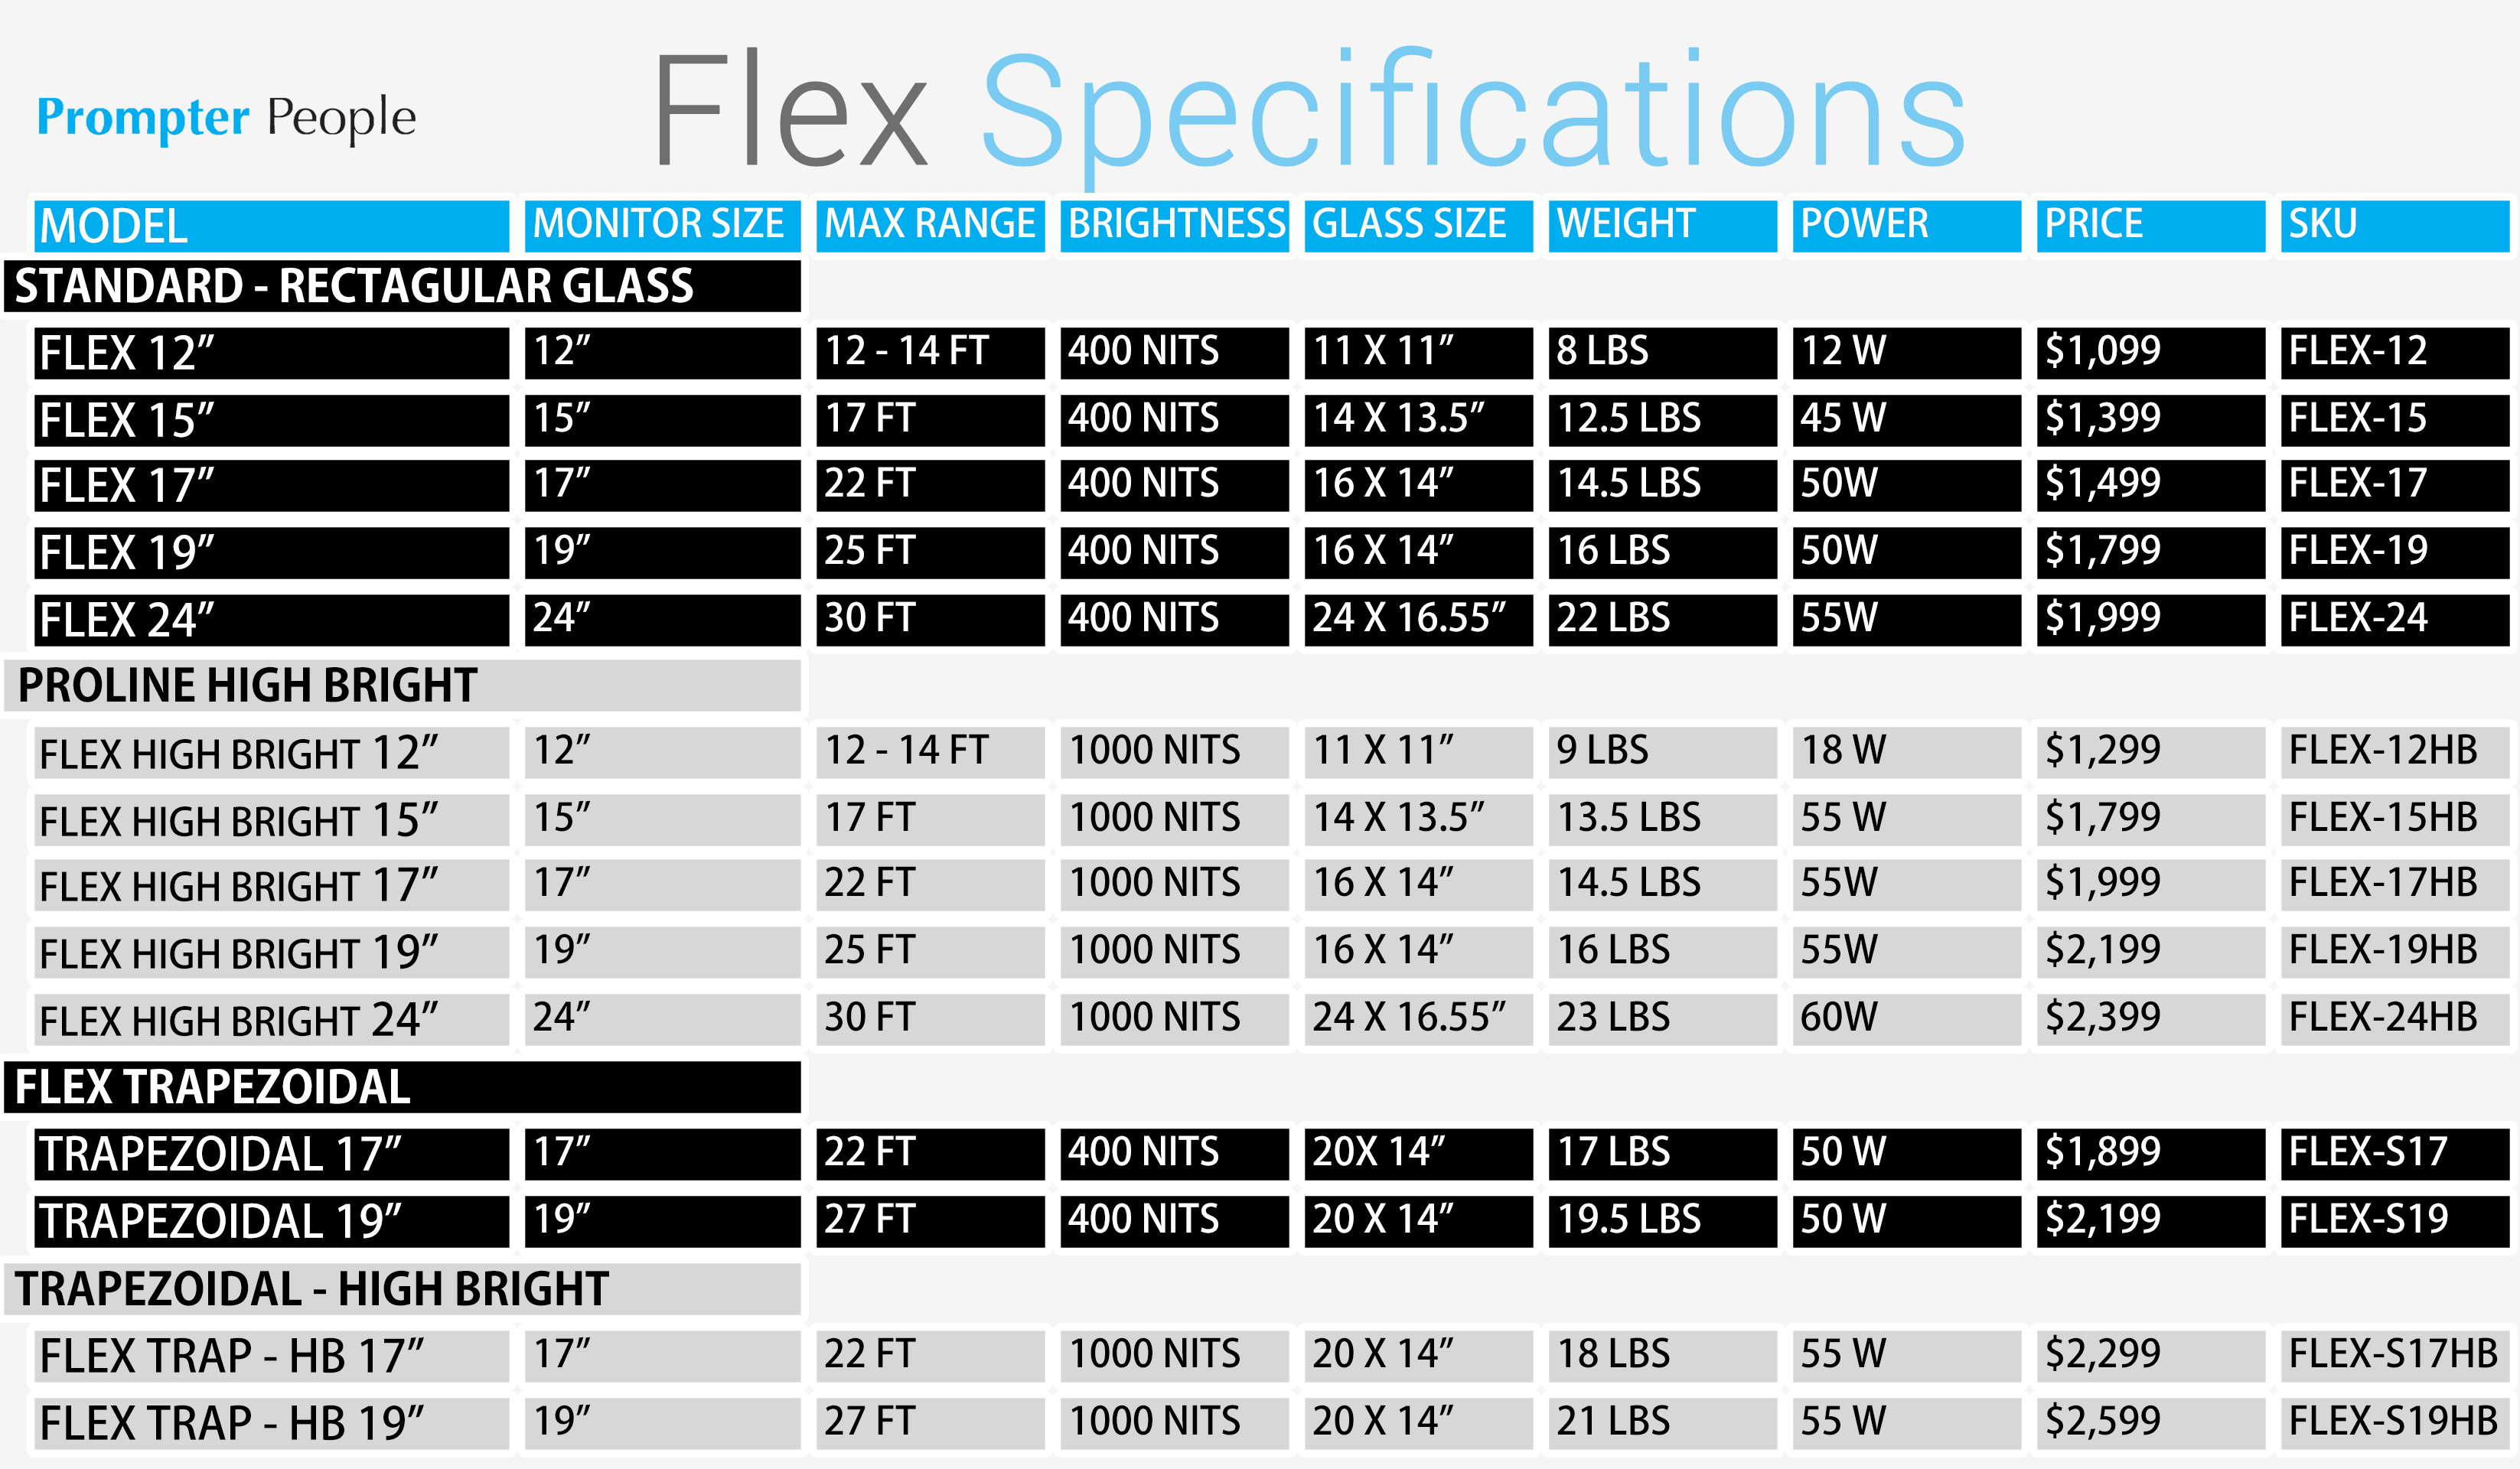 flex-specifications-grey-upd.jpg